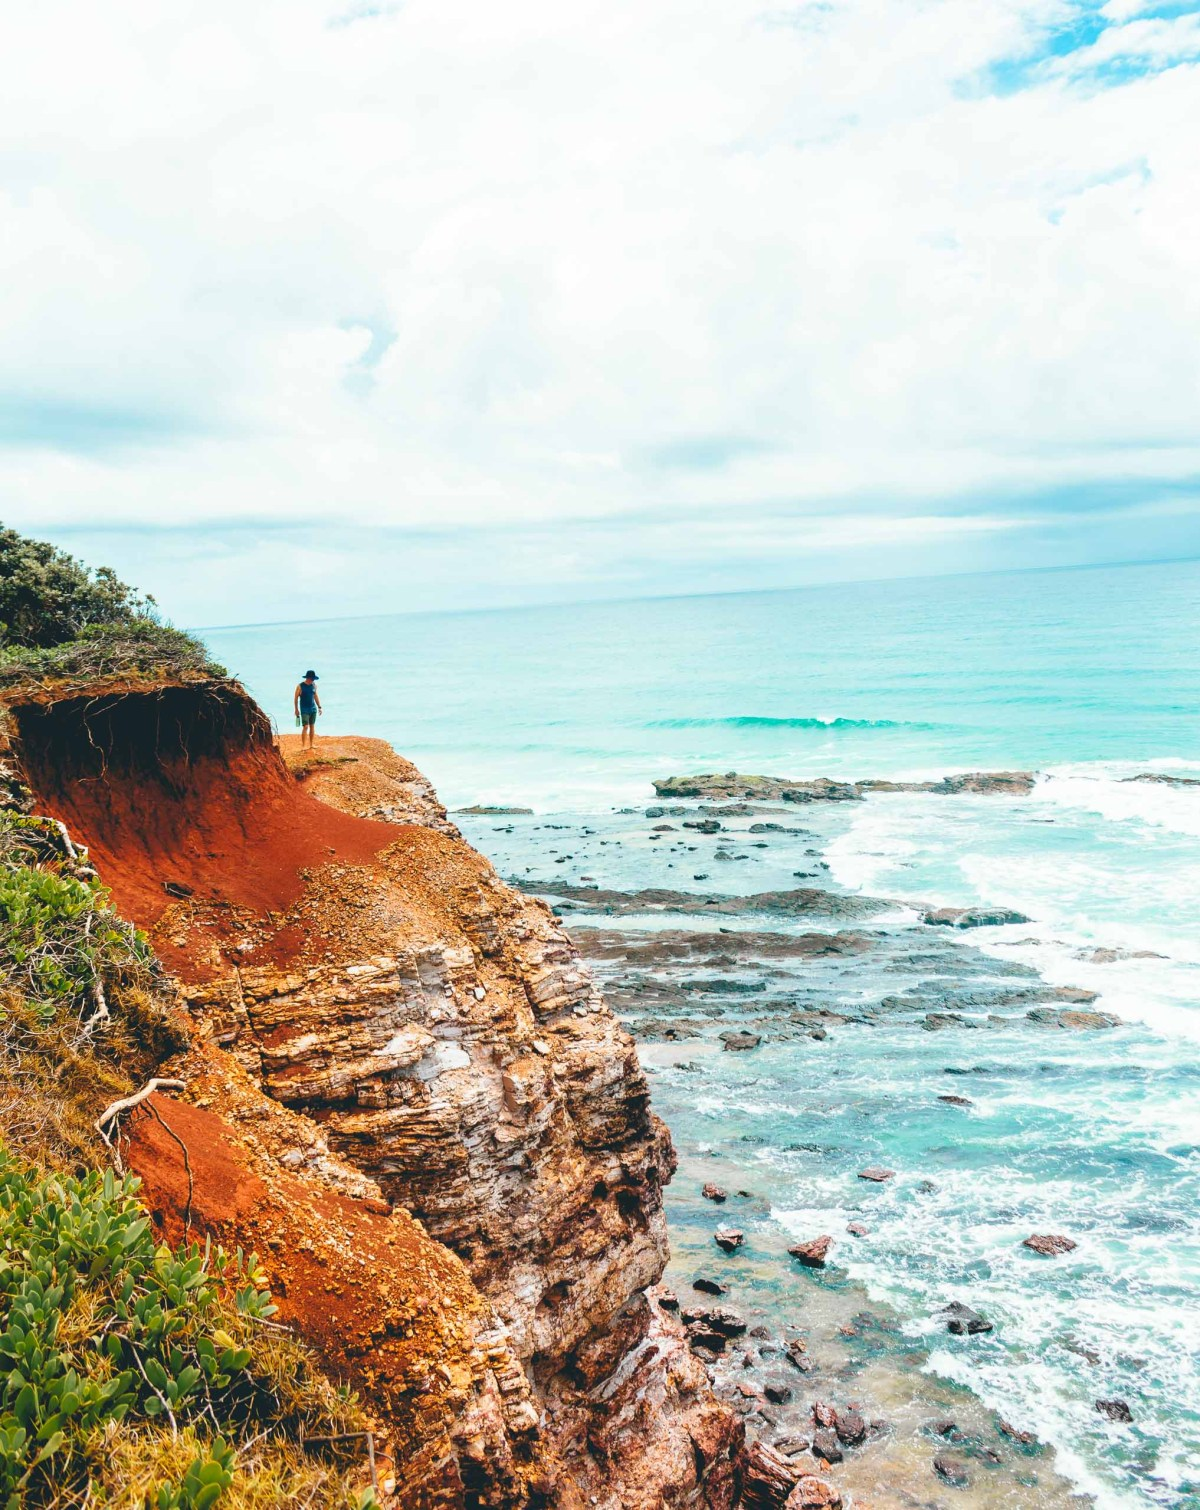 Coastal Hiking in Yuraygir National Park (Northern NSW) Scout Hinchliffe beach cave